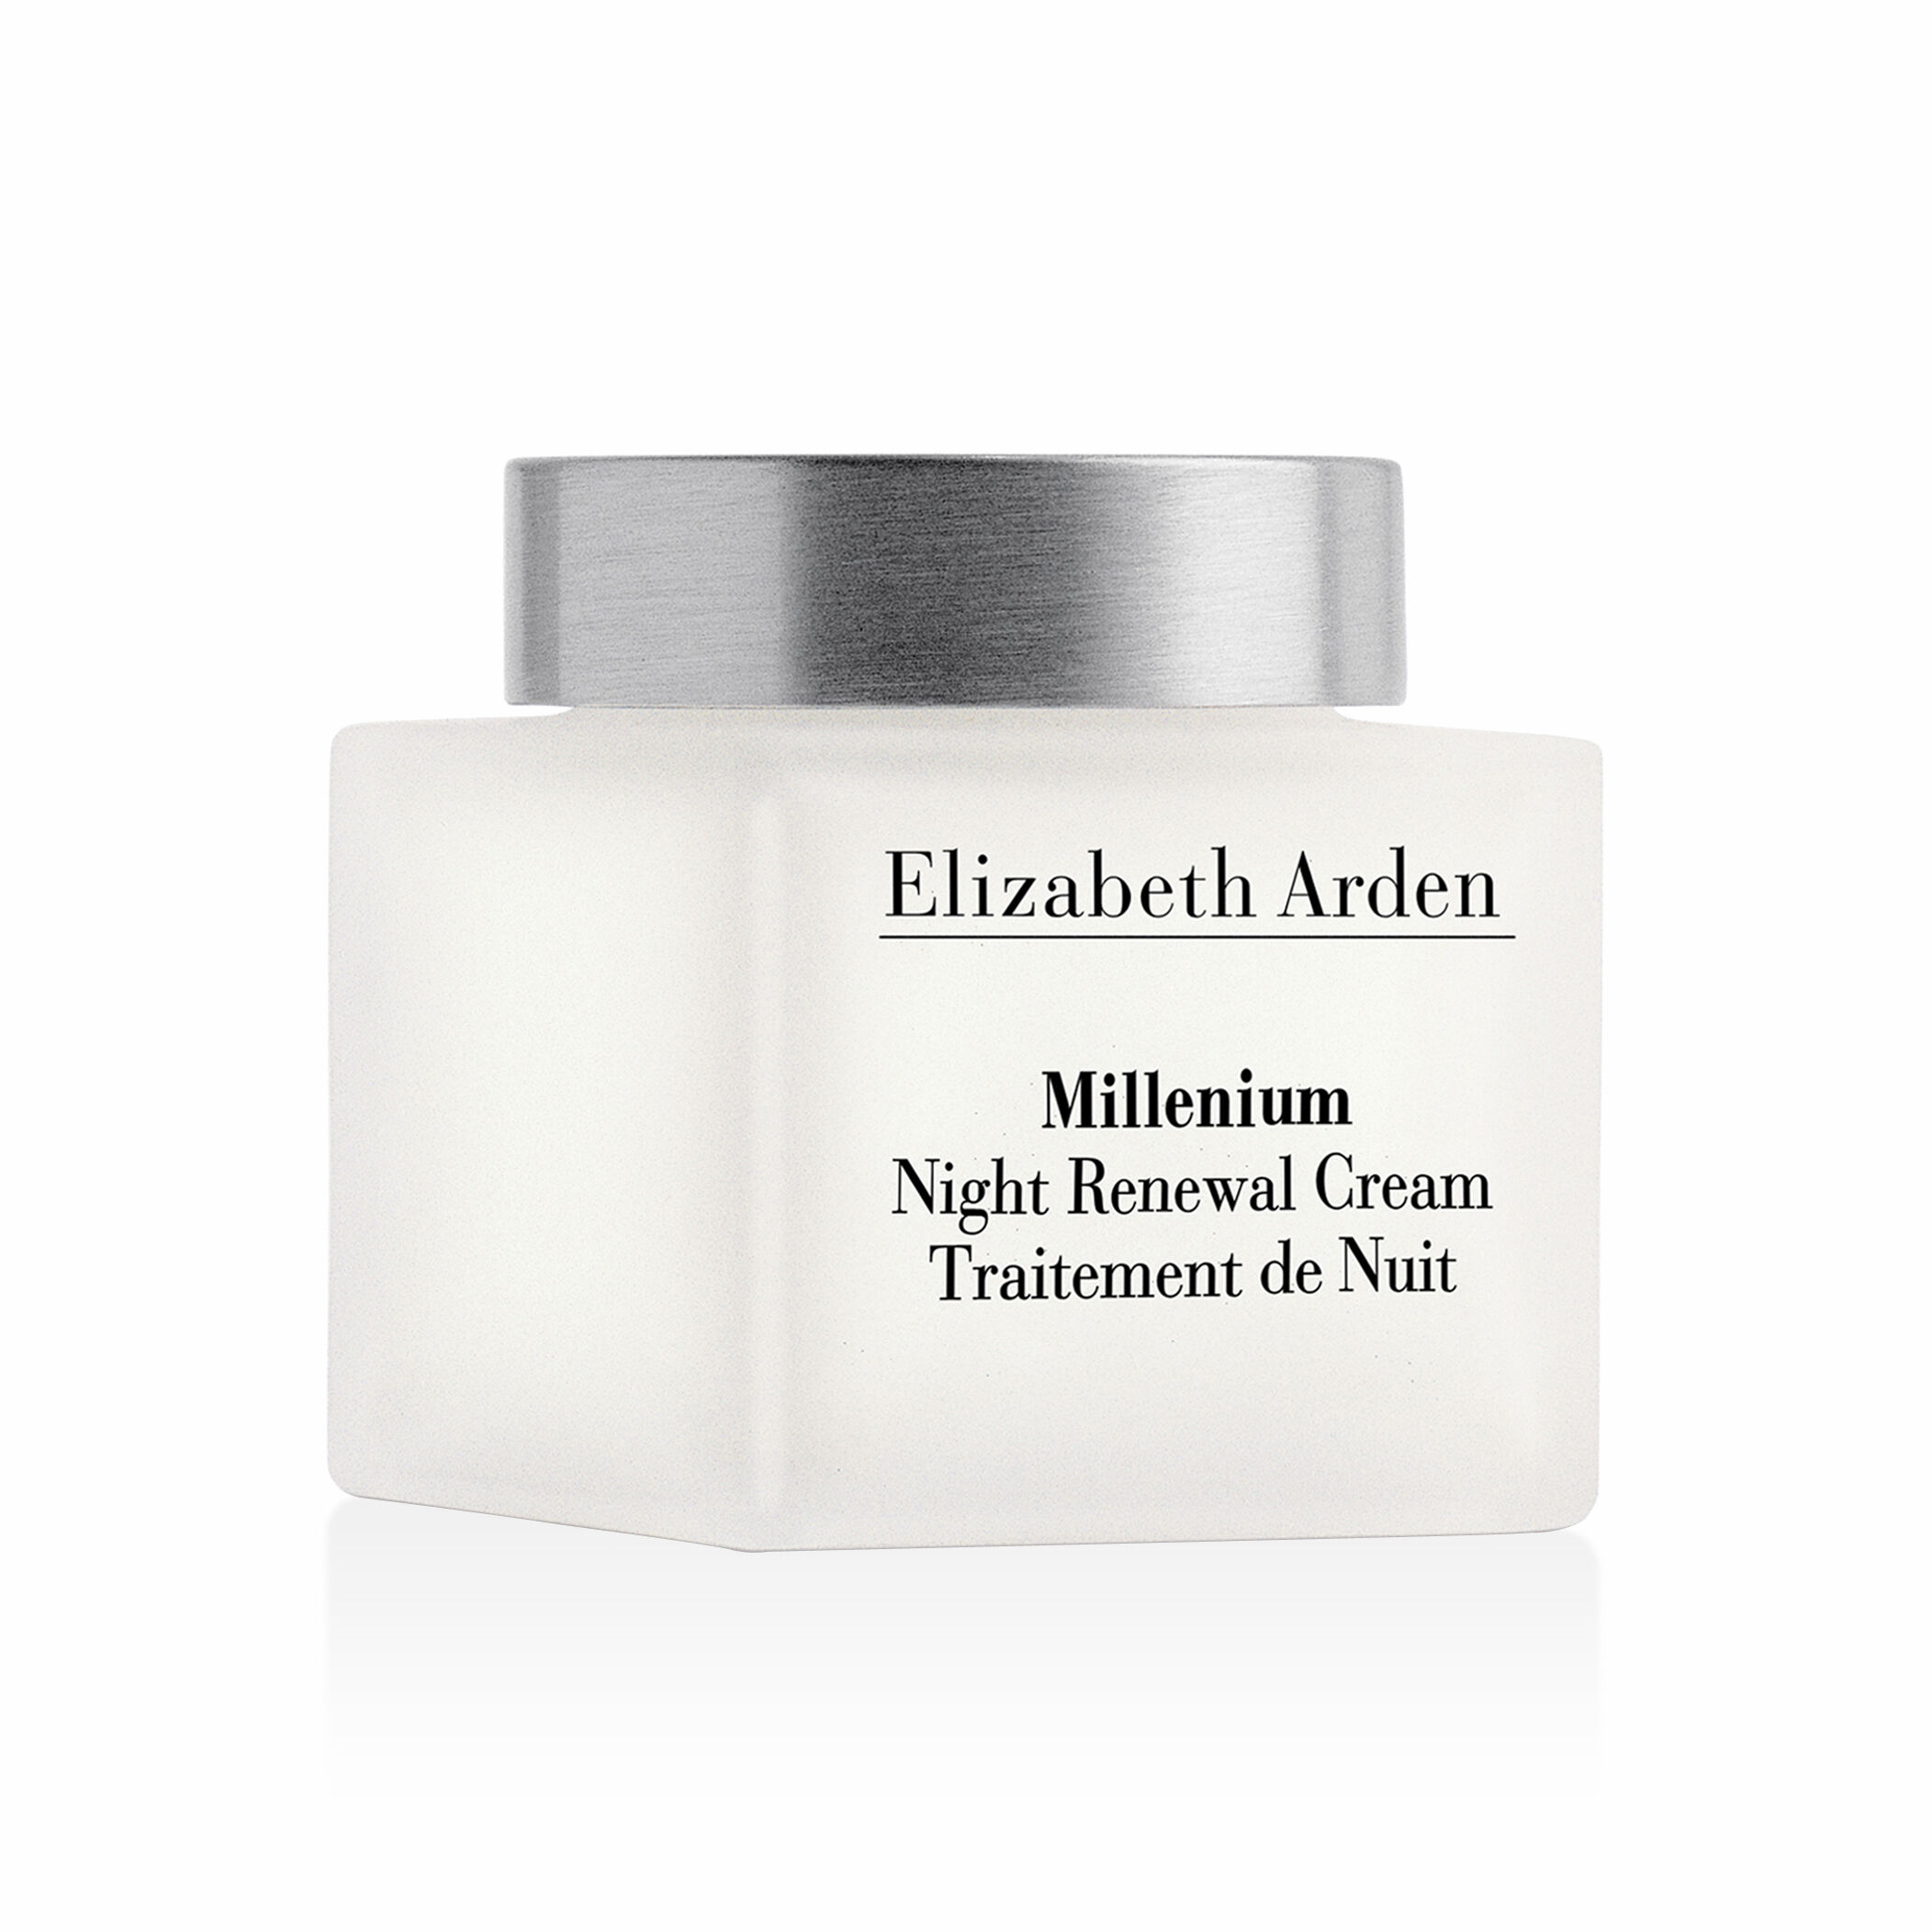 Millenium Night Renewal Cream